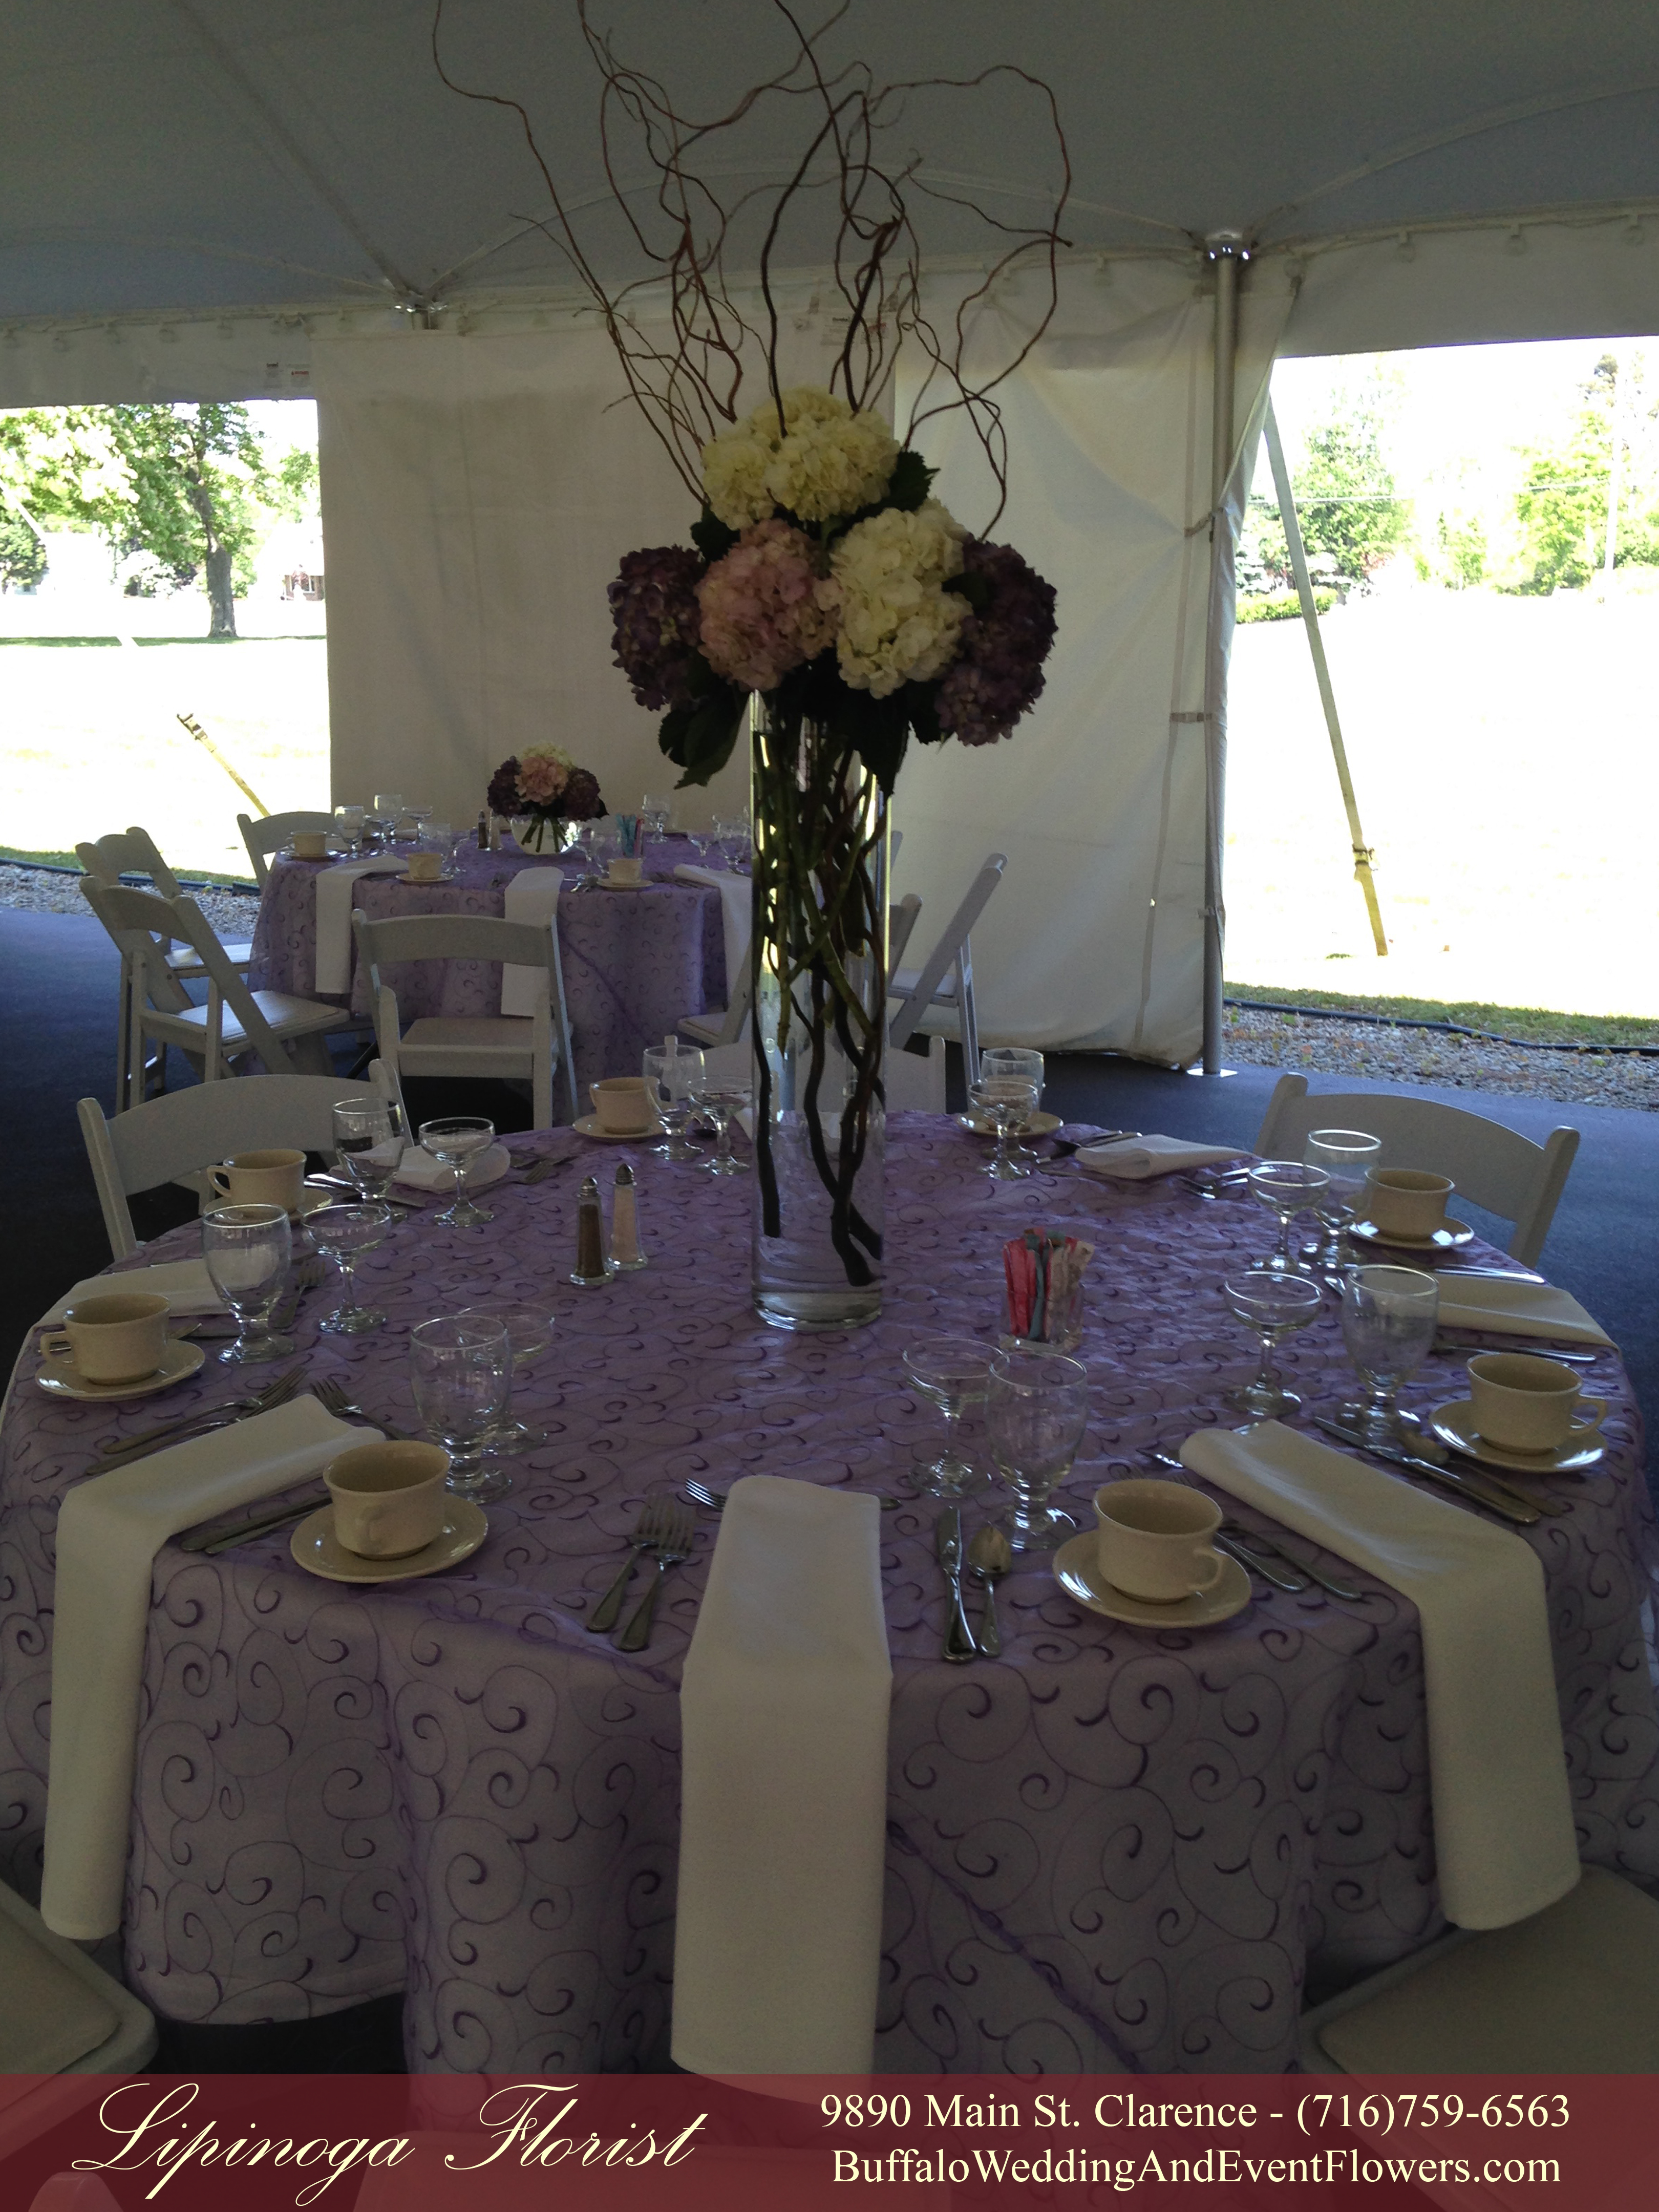 cylinder centerpieces  Buffalo Wedding  Event Flowers by Lipinoga Florist